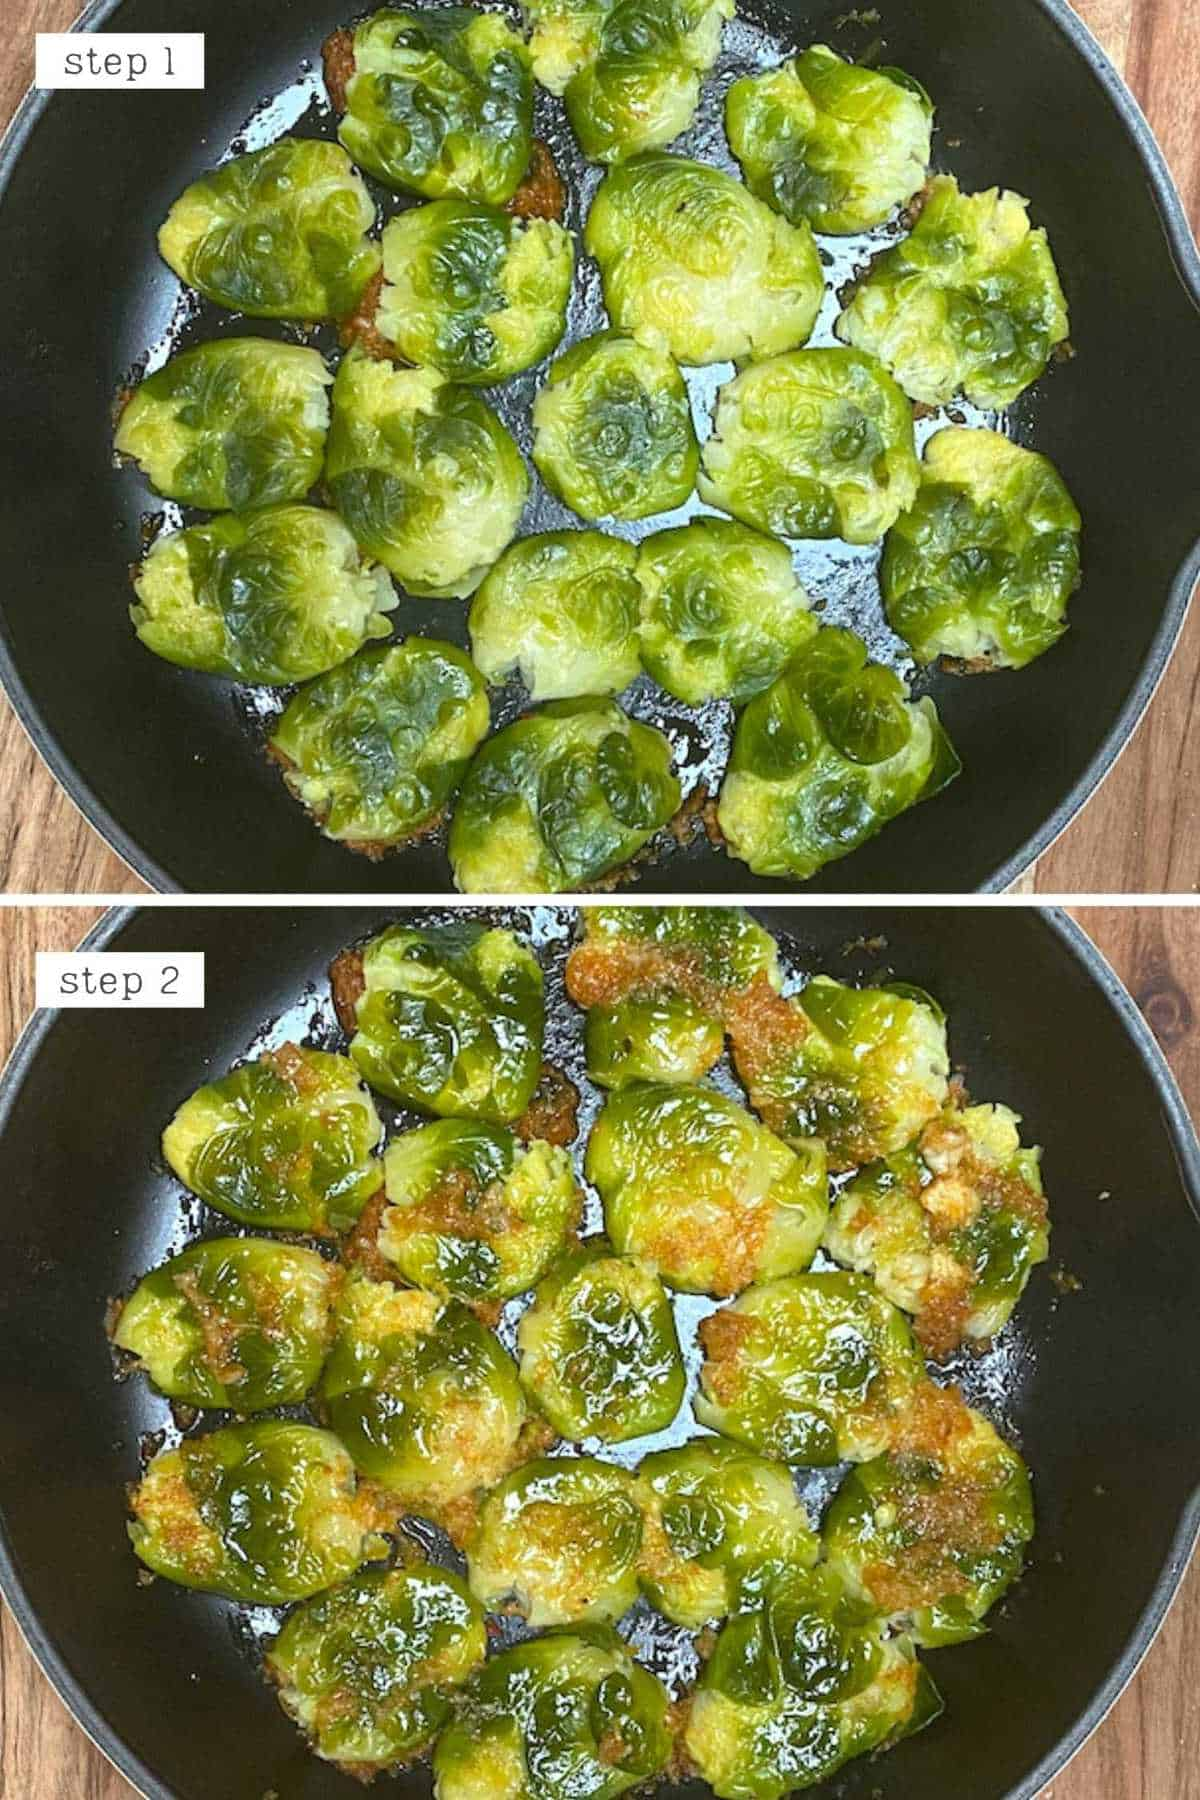 Steps for preparing brussels sprouts for roasting